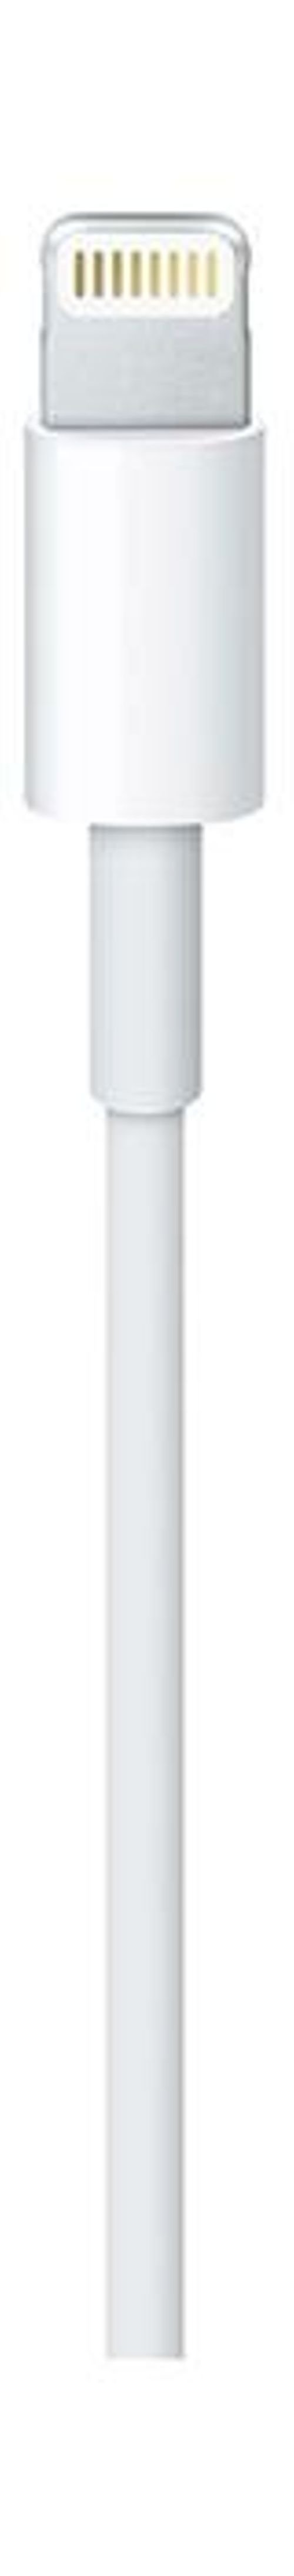 Apple USB Lightning Cable MD818ZM/A 1m White color